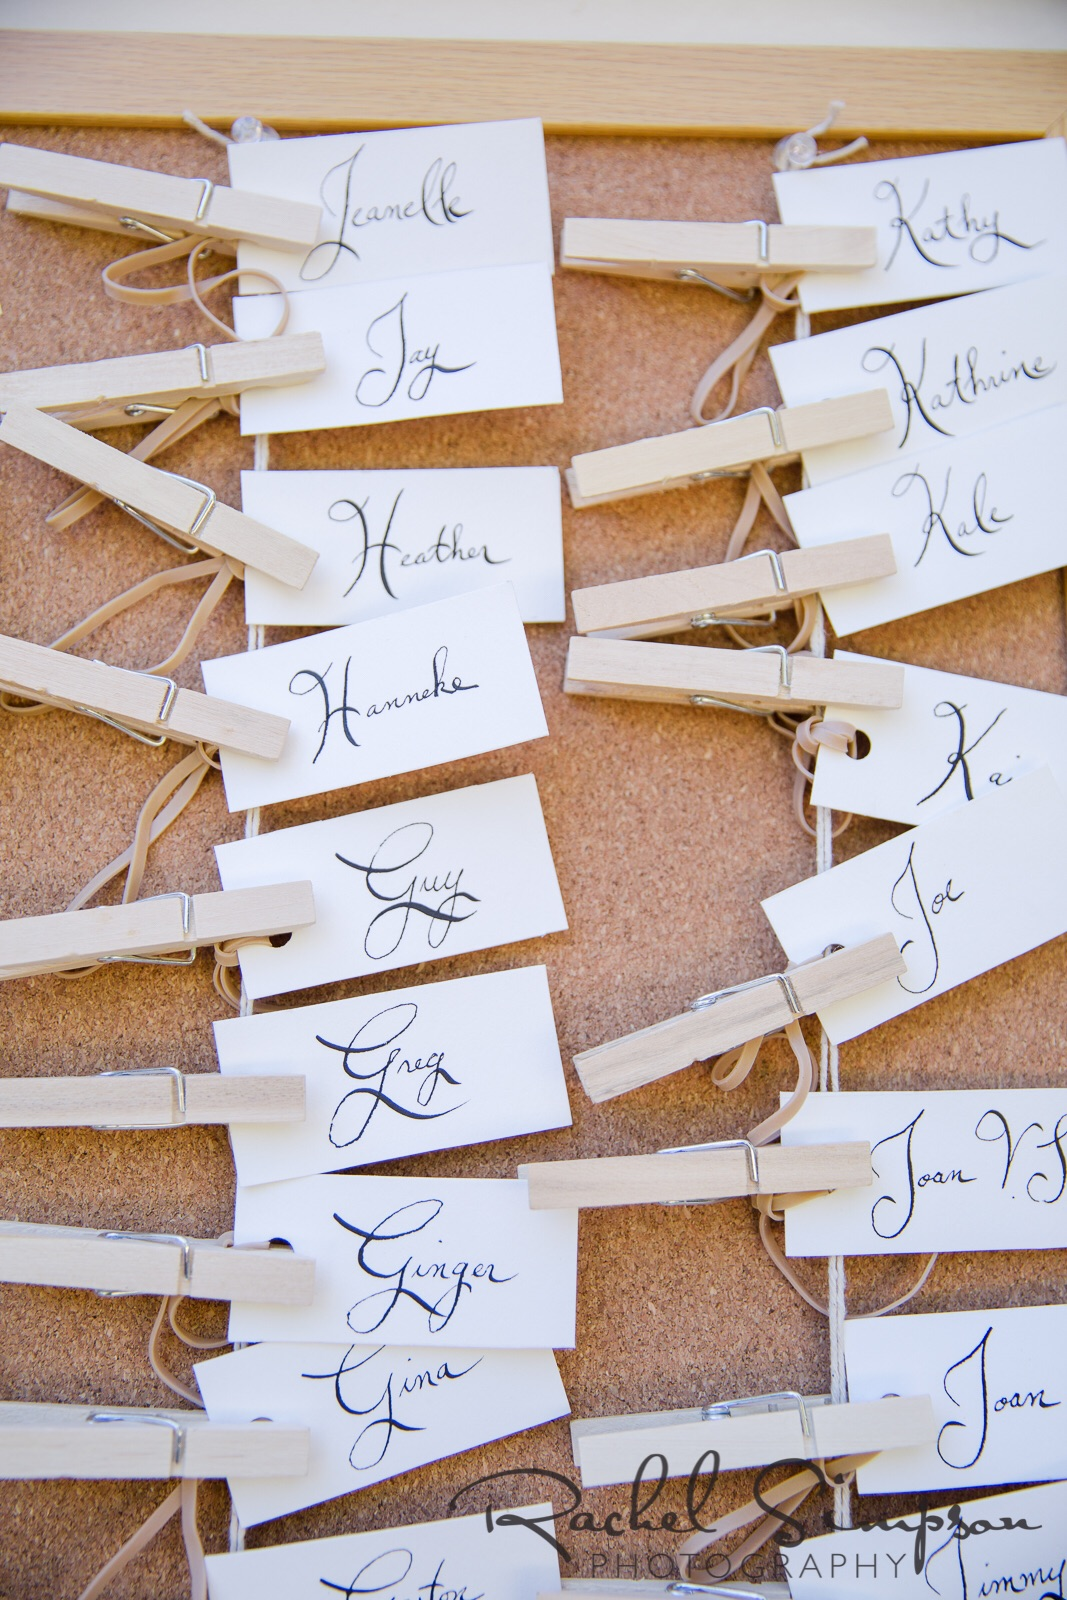 Tags for the pilsner glasses that were favors - calligraphy done by the bride